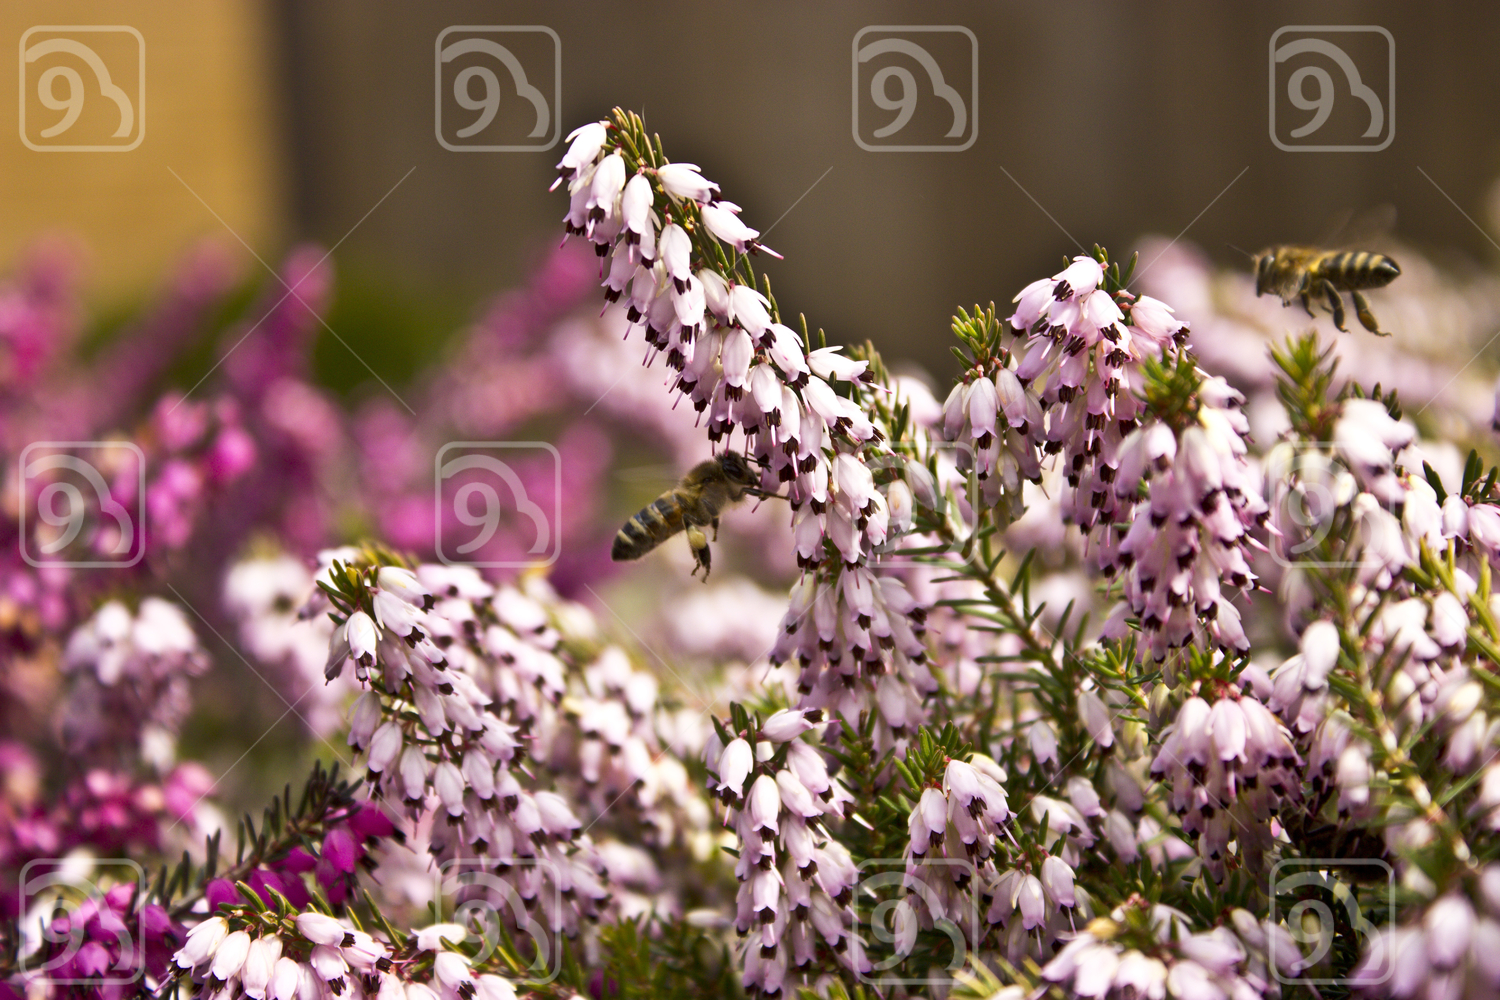 Bees on erica flower